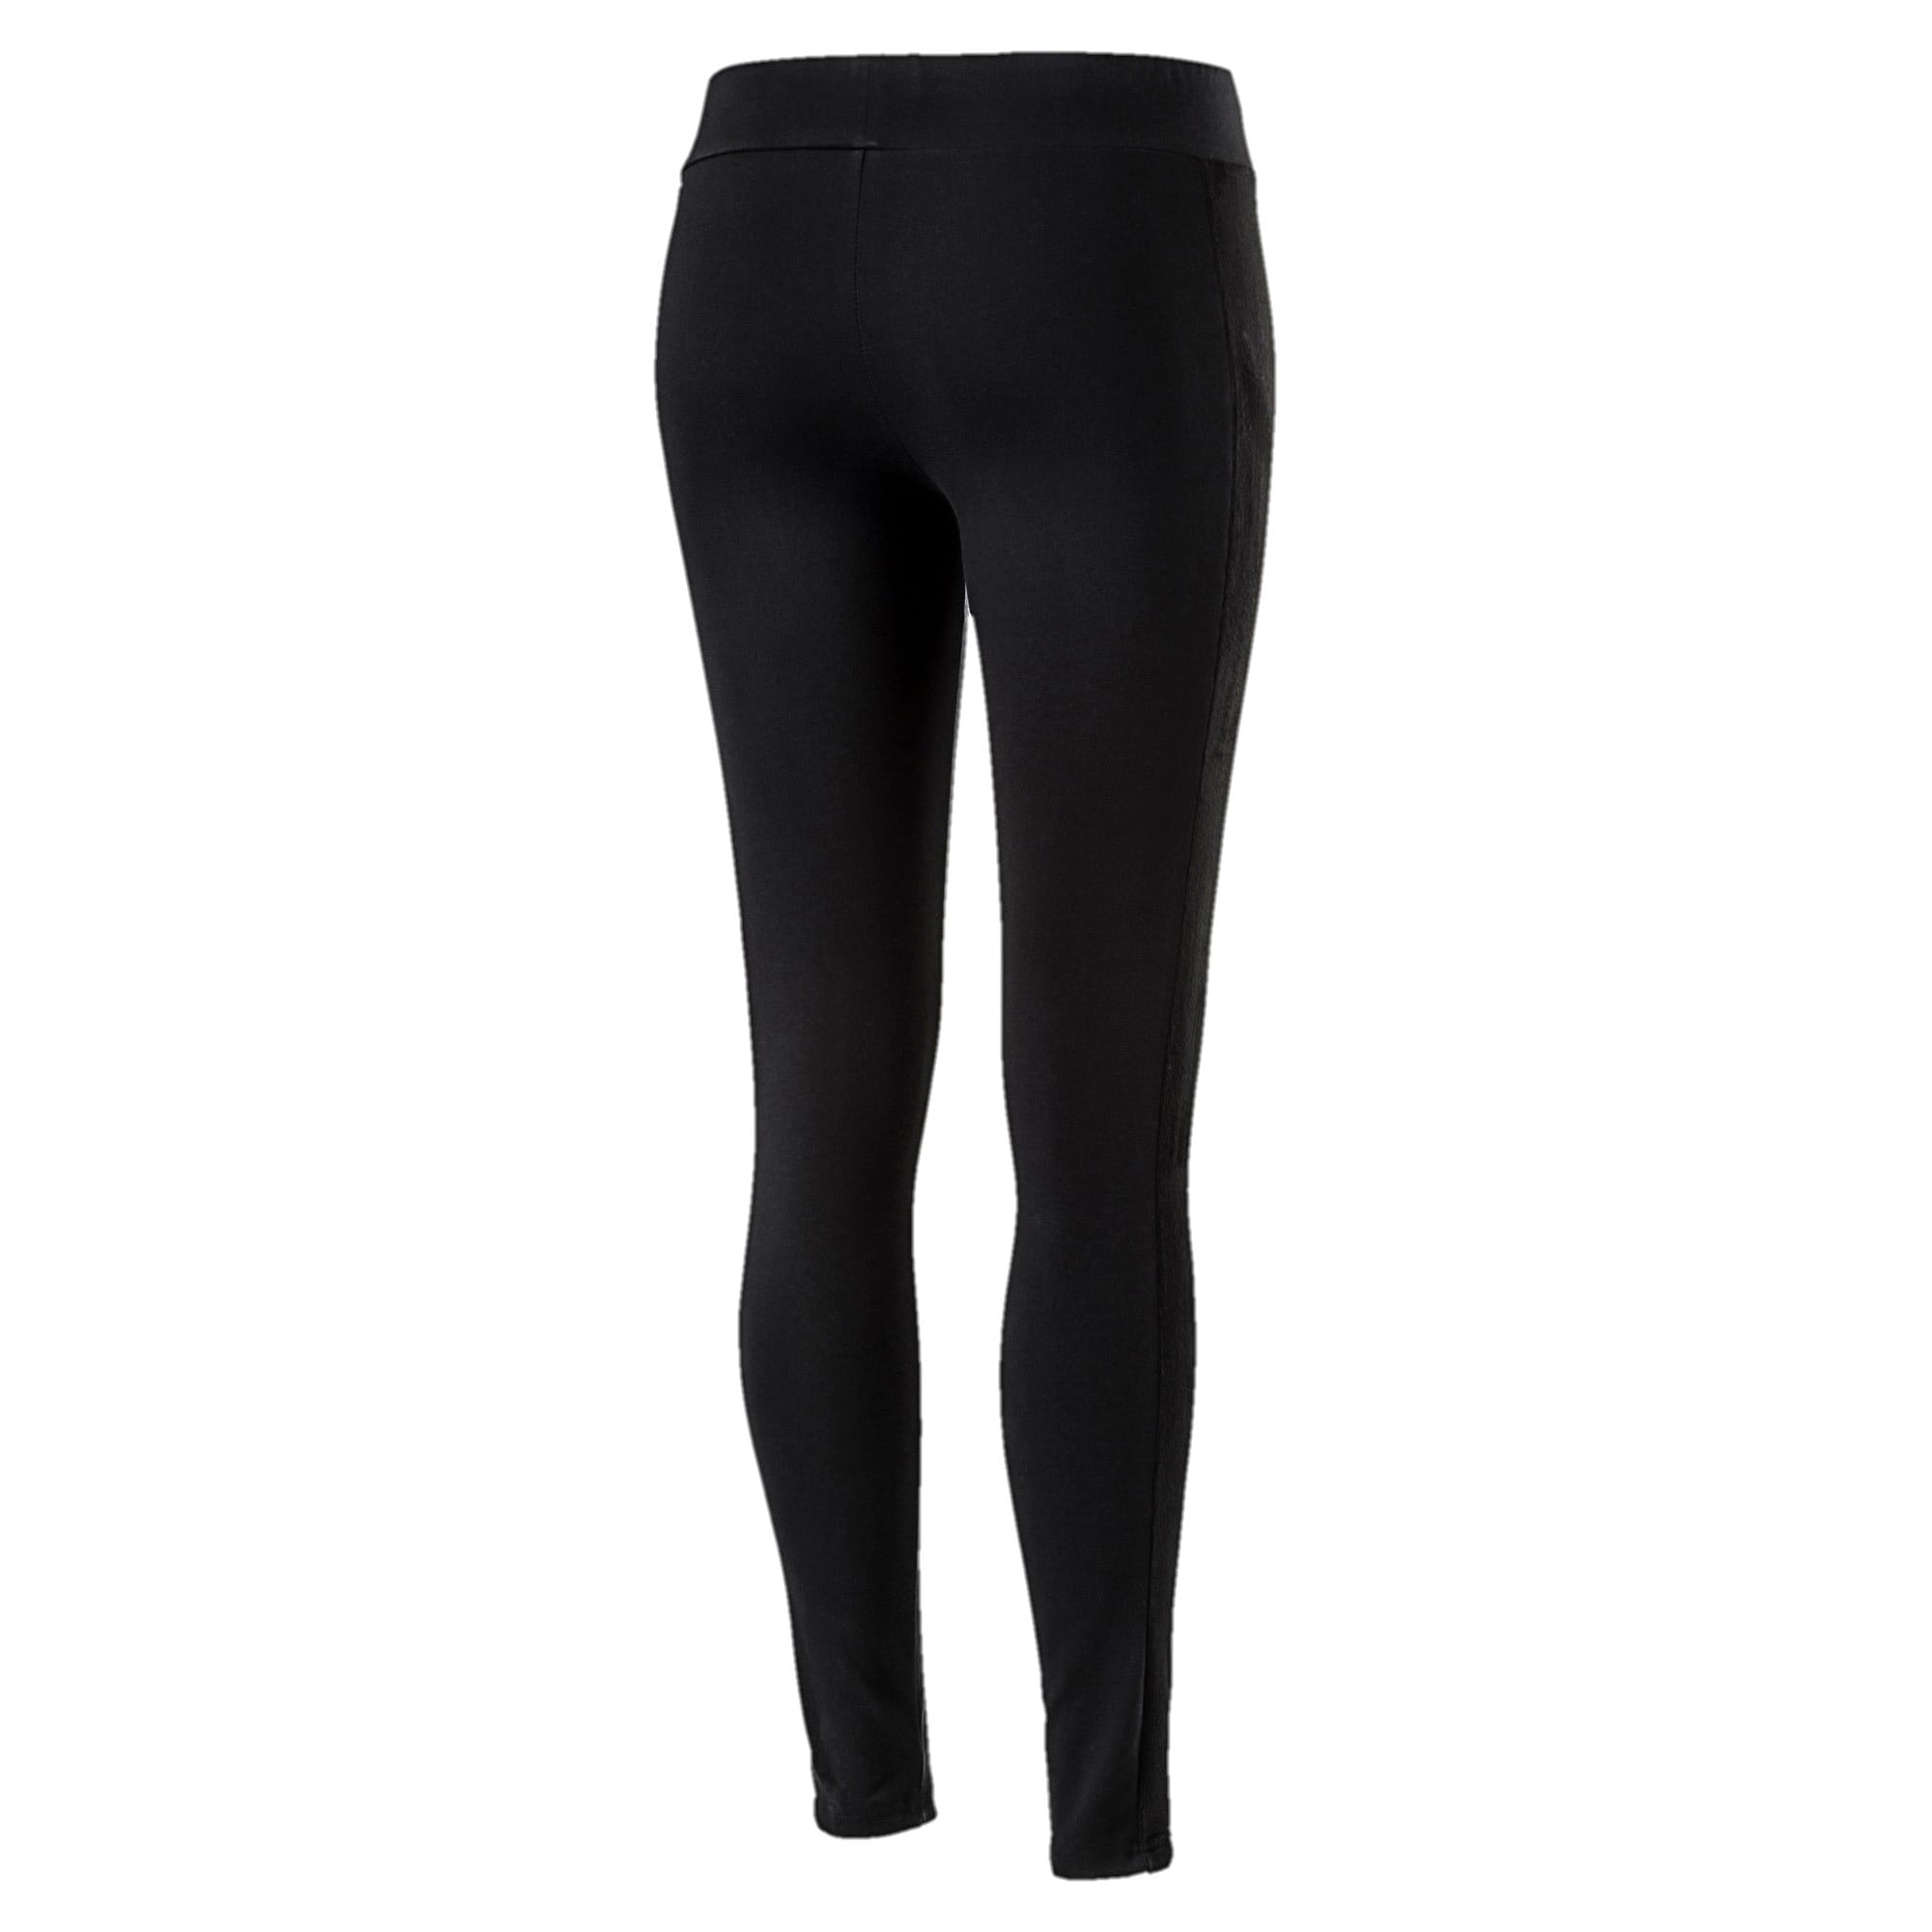 Thumbnail 5 of Classics Women's Winterized ArchiveT7 Leggings, Cotton Black, medium-IND